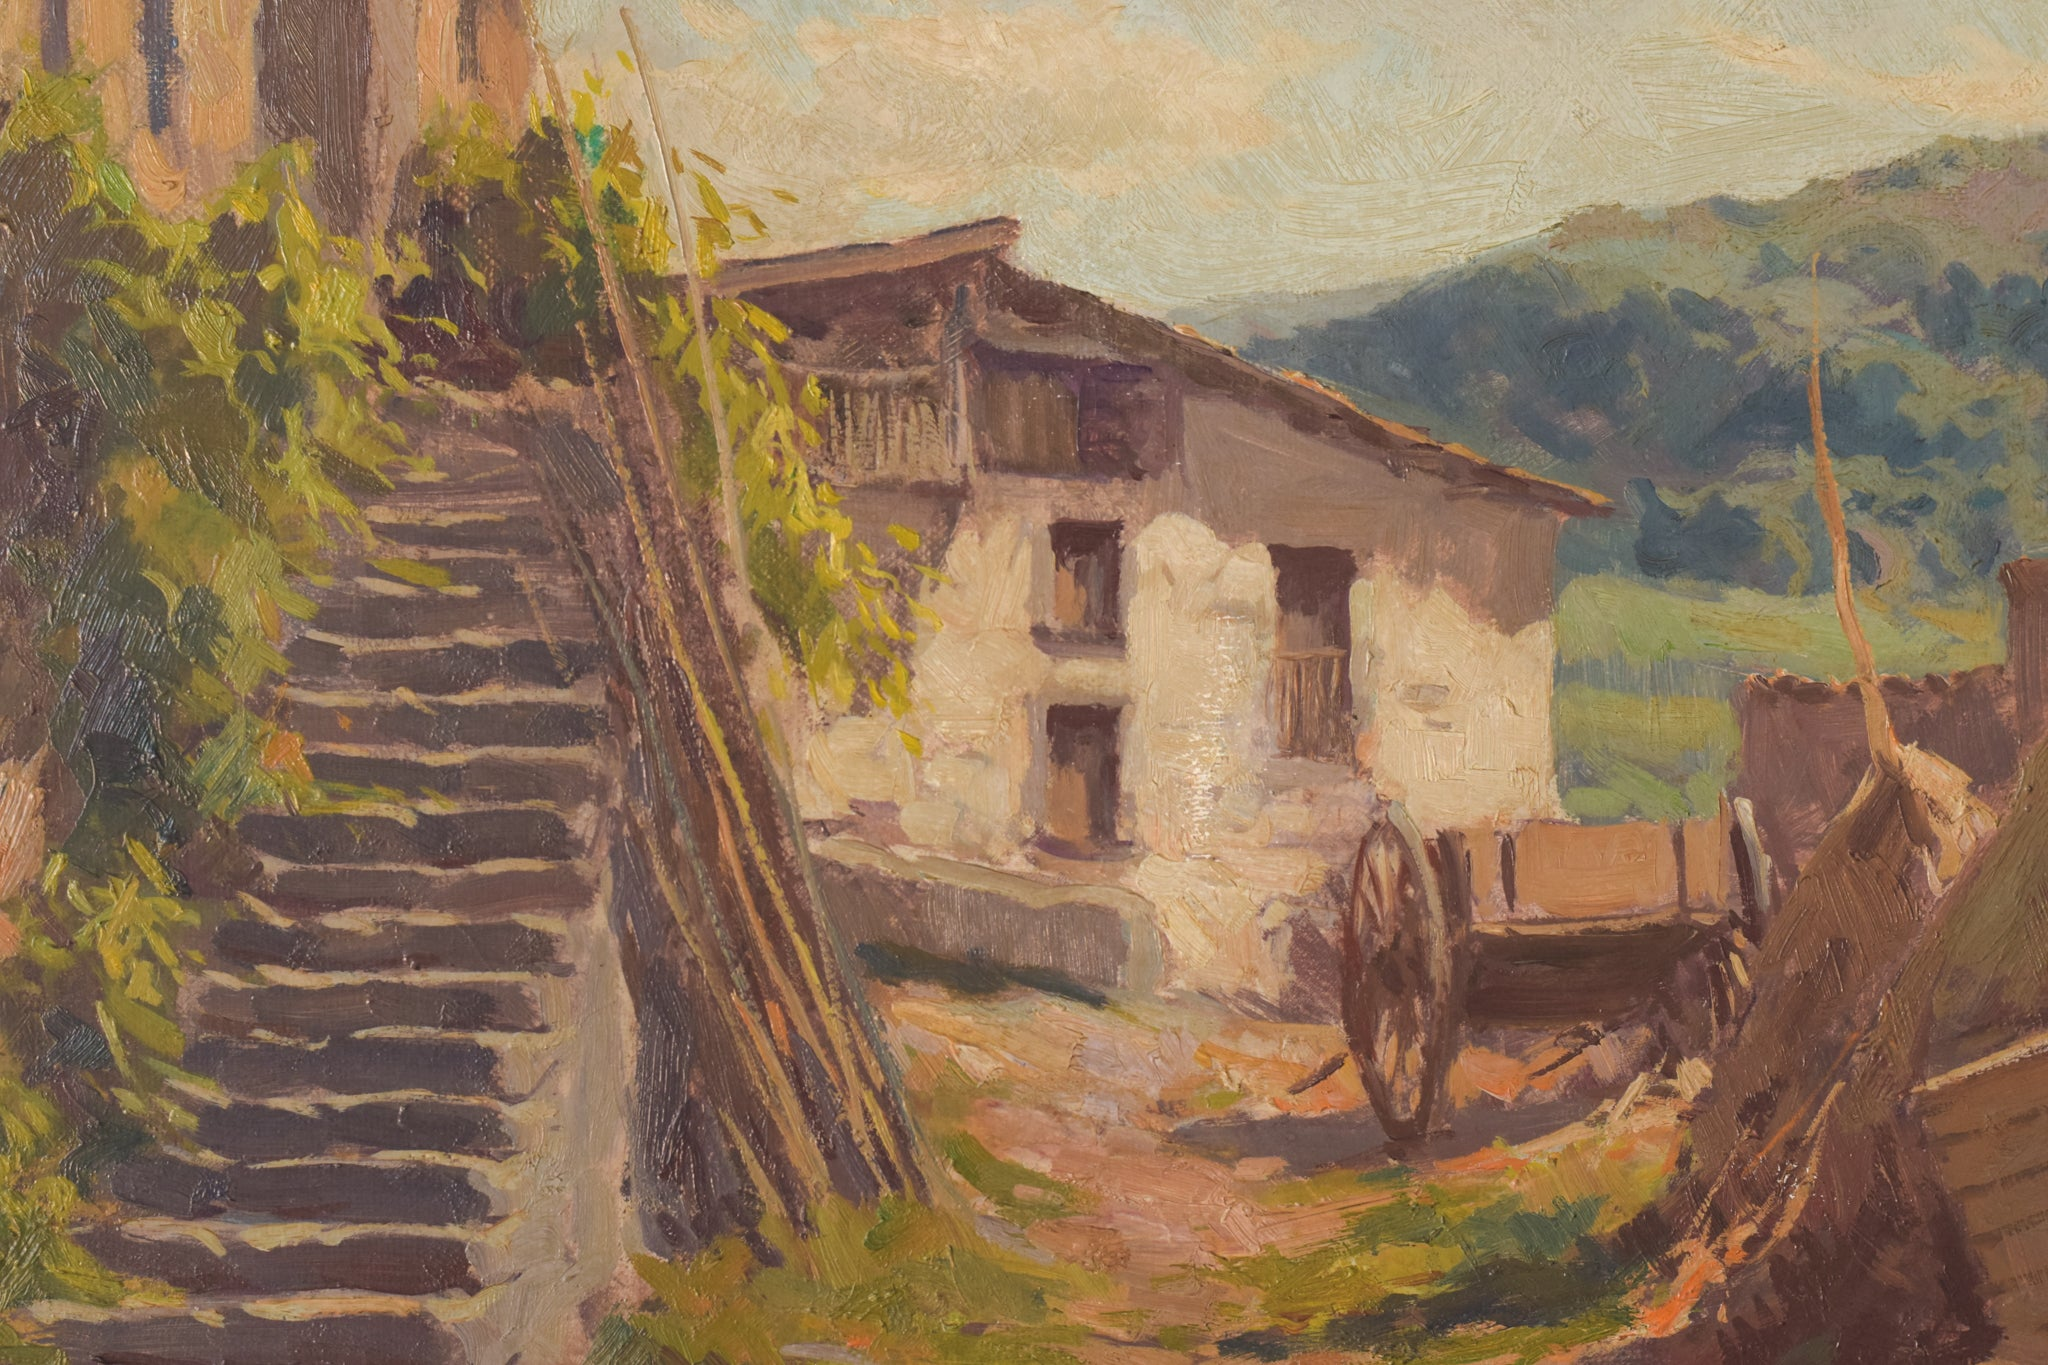 Farmyard scene with mountains and cart